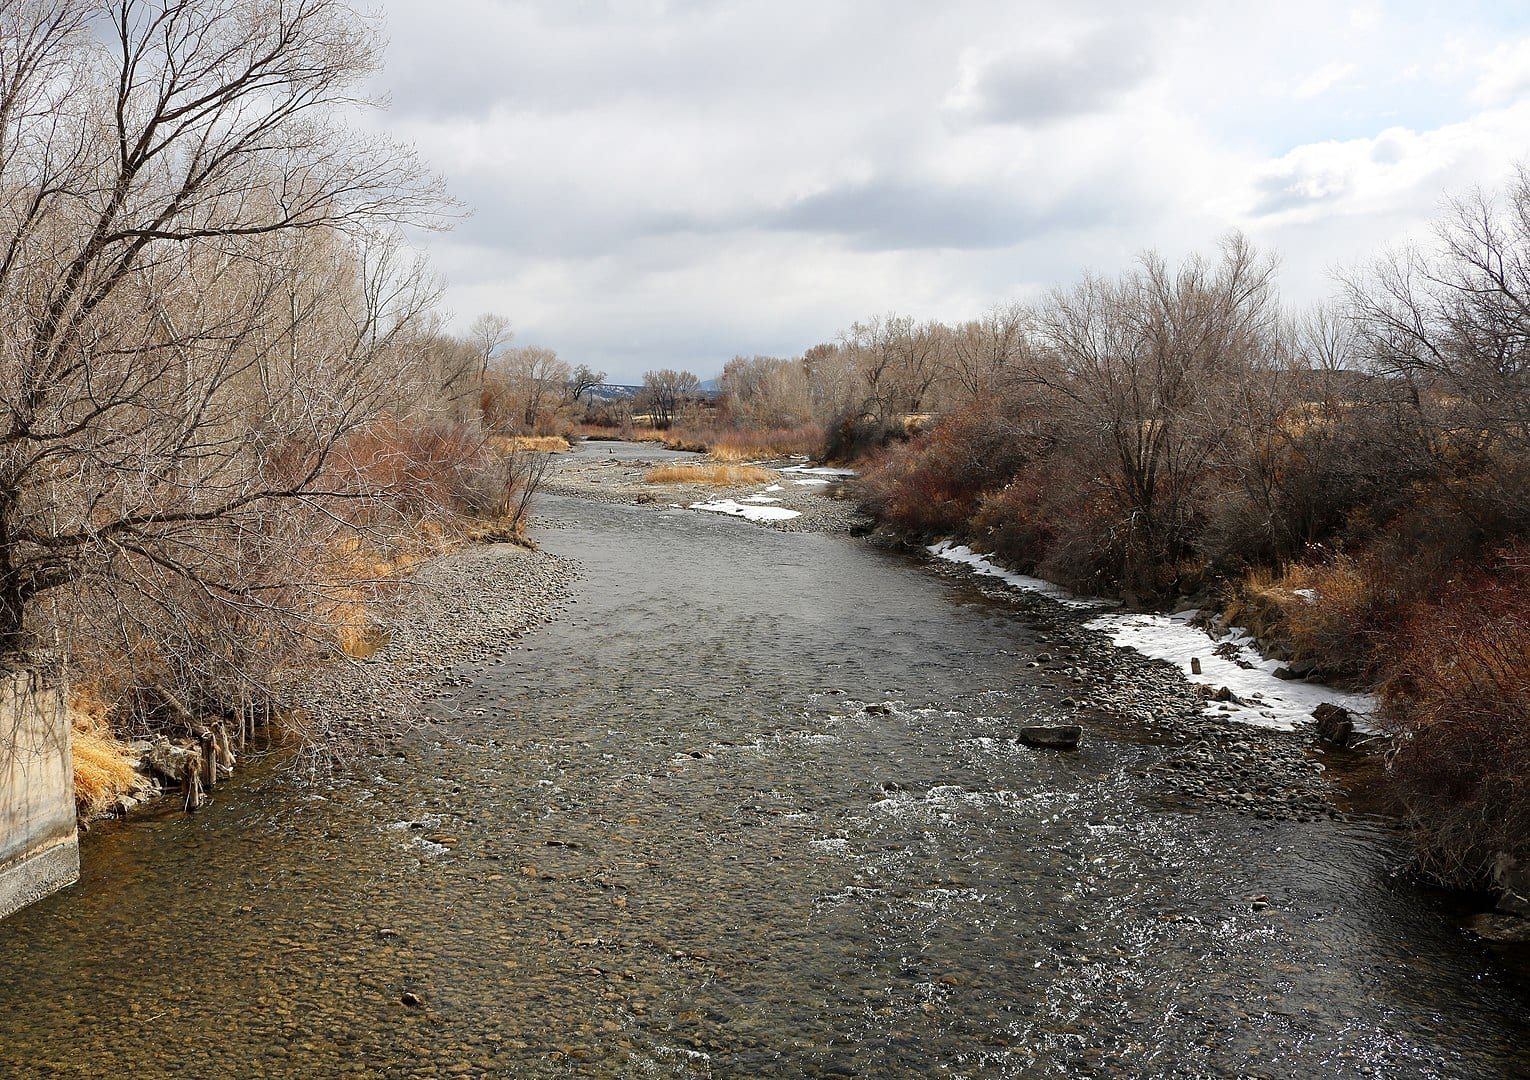 Image of the Uncompaghre River in Colorado during winter